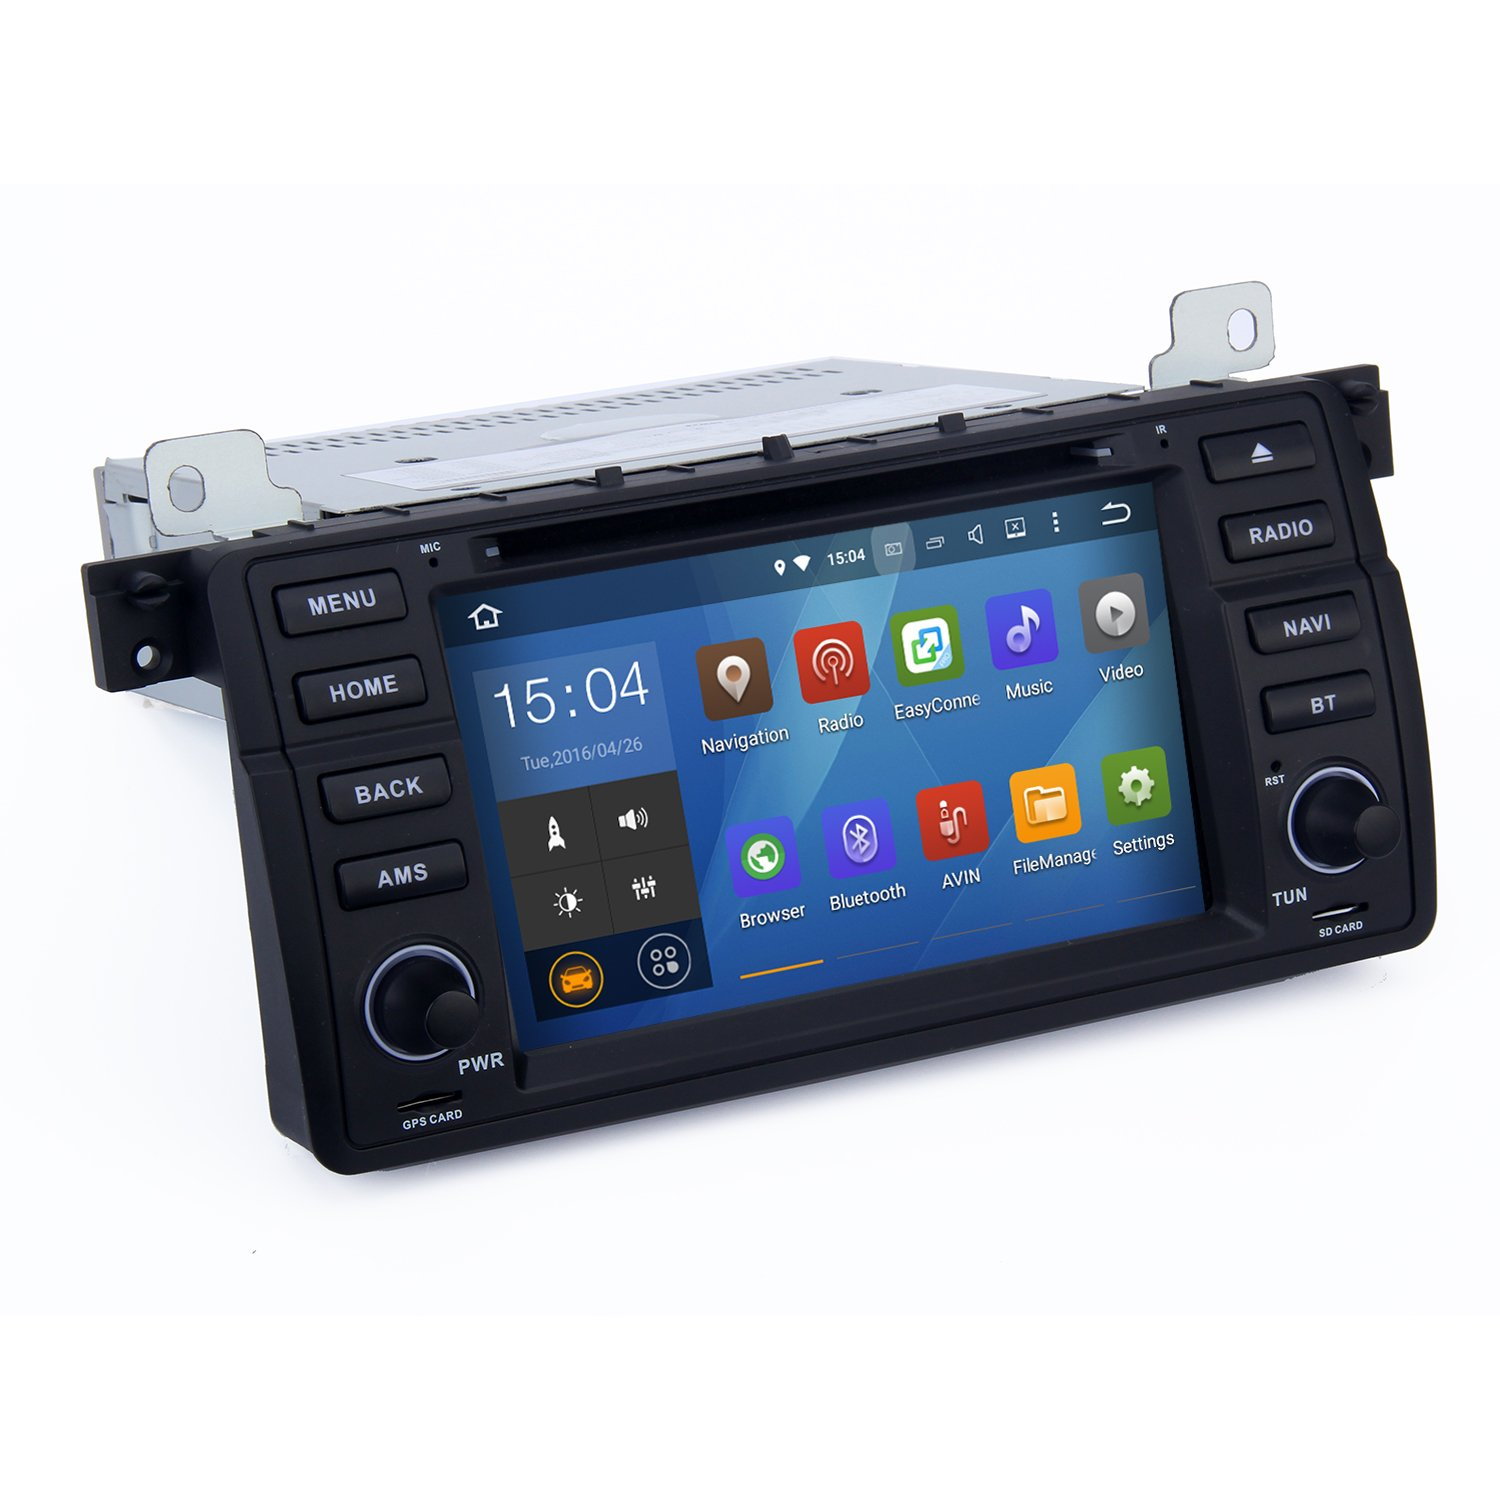 Cheap Car Stereo Android For Bmw E87 Find 328i Double Din Get Quotations Sygav 511 Lollipop Cd Dvd Player E46 M3 318i